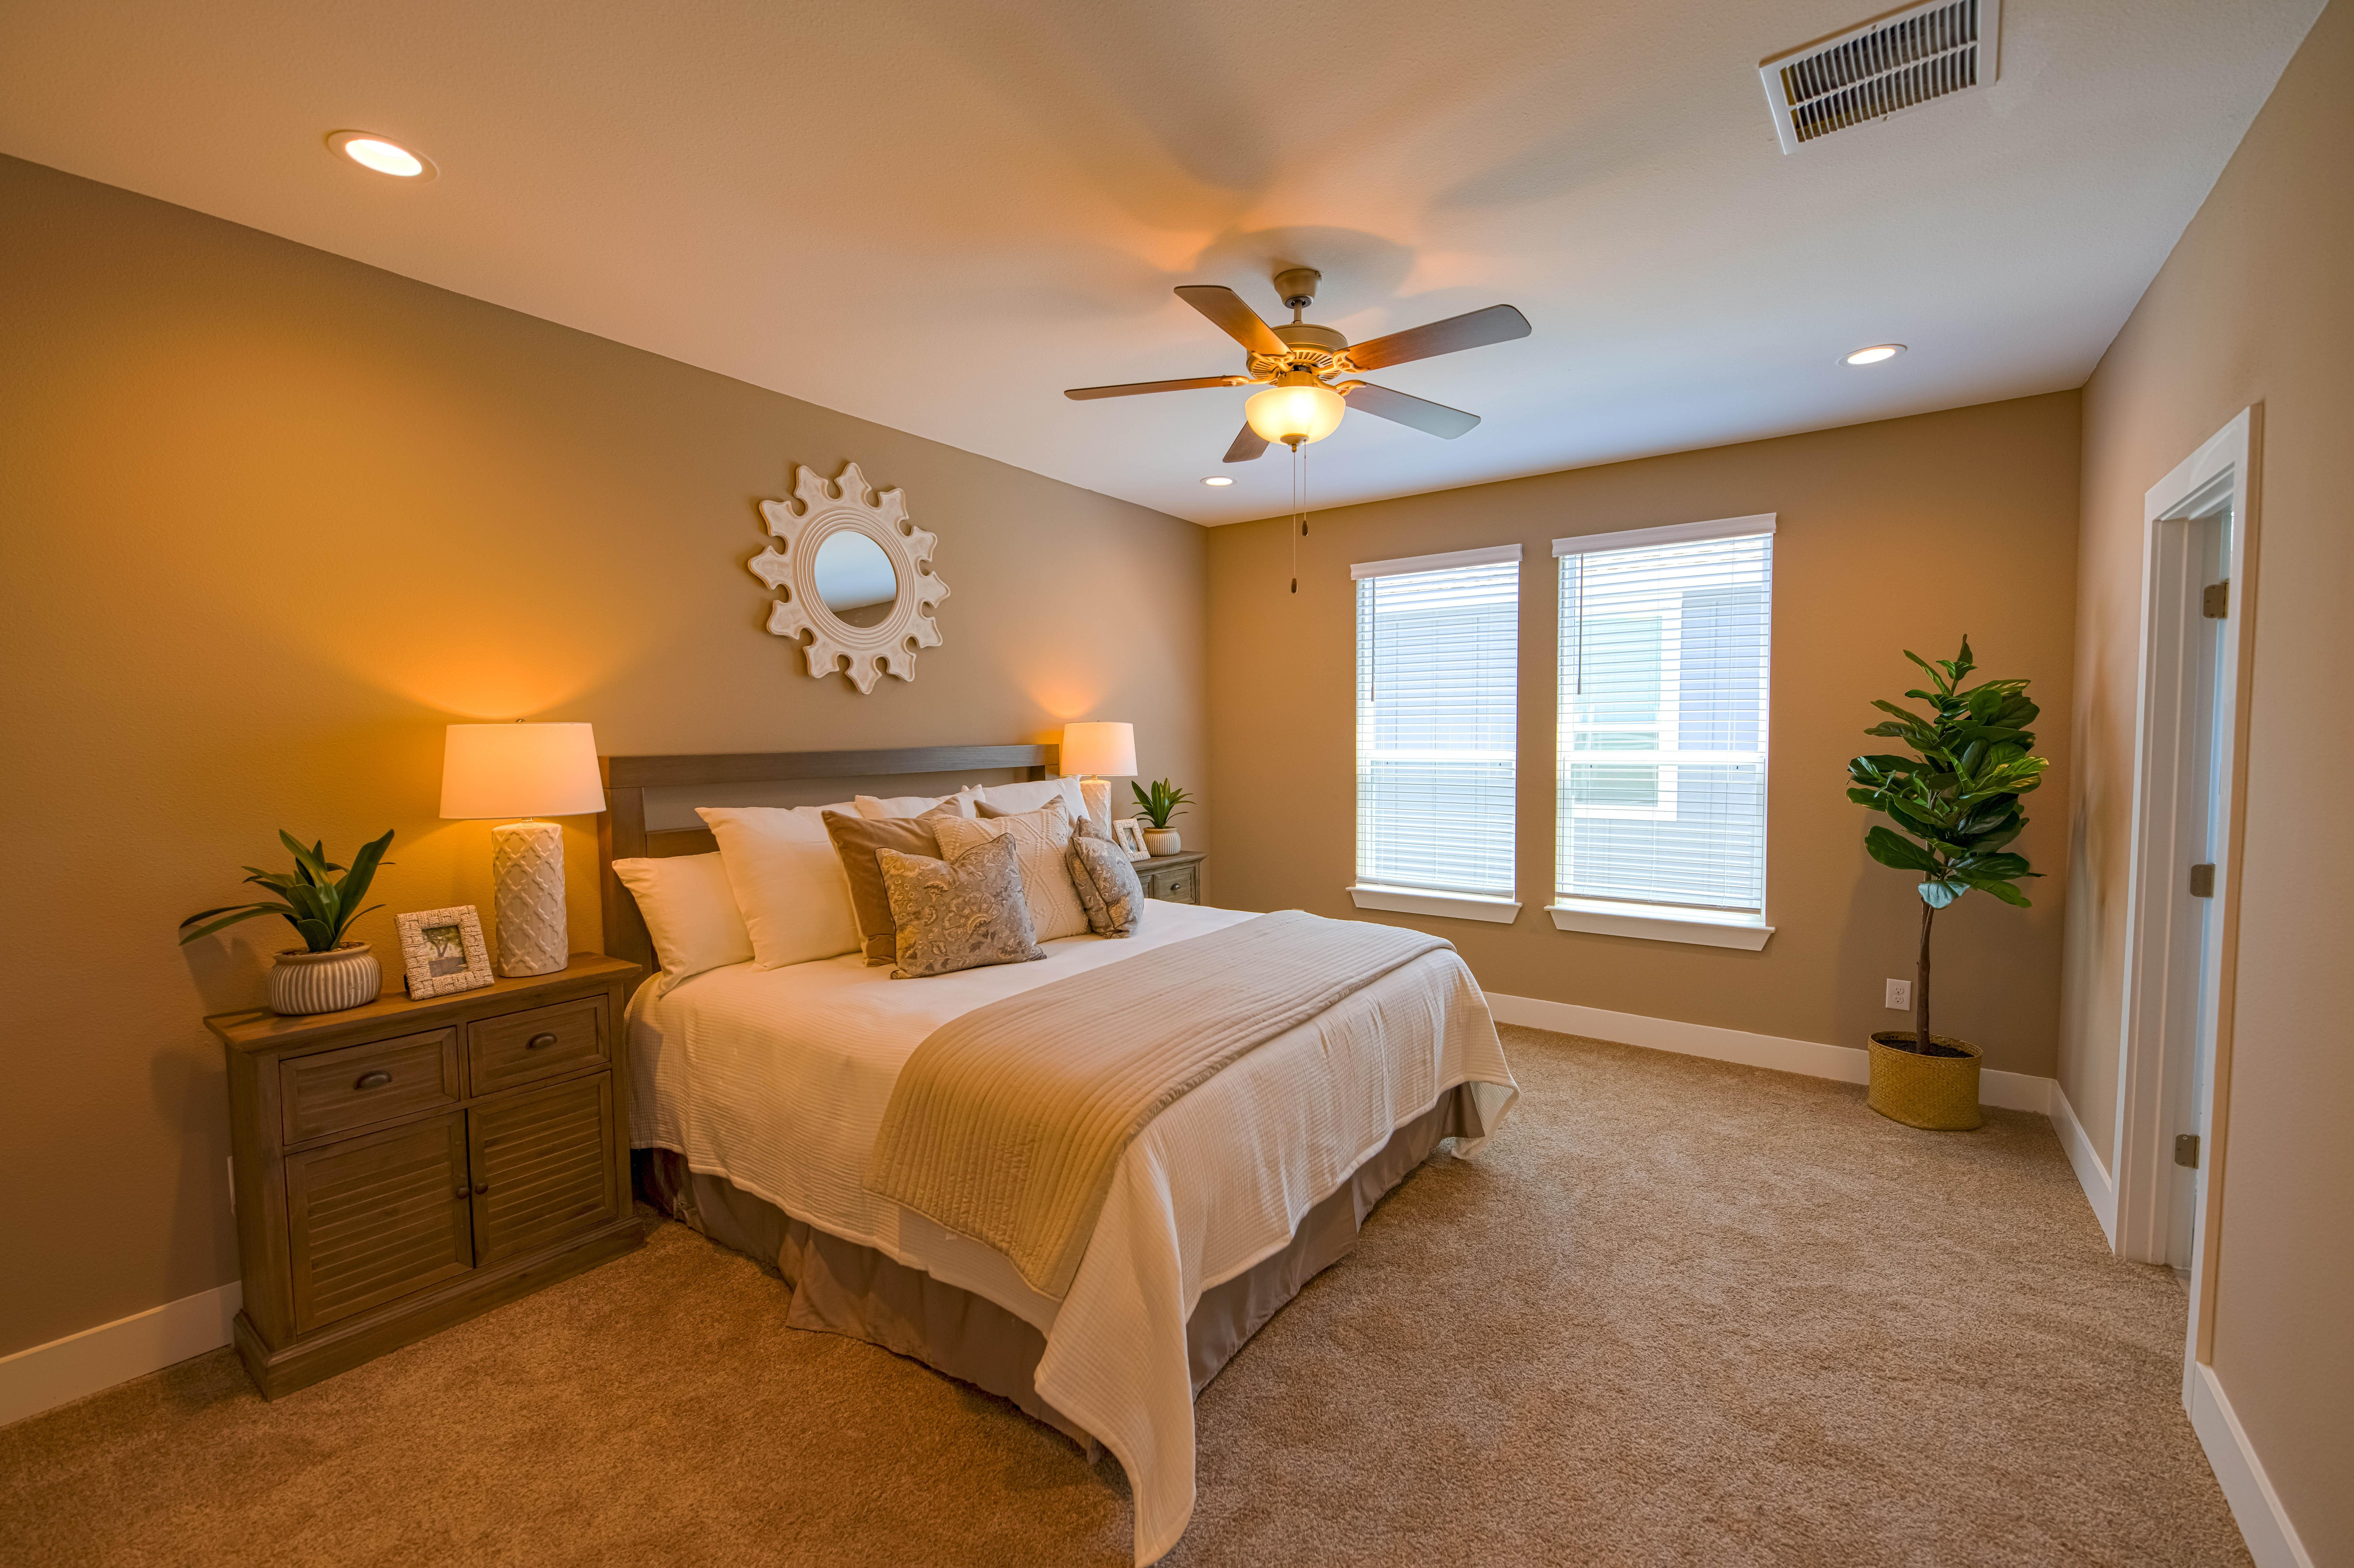 Bedroom featured in the Cibolo Creek Townhome By Casina Creek Homes, LLC in San Antonio, TX